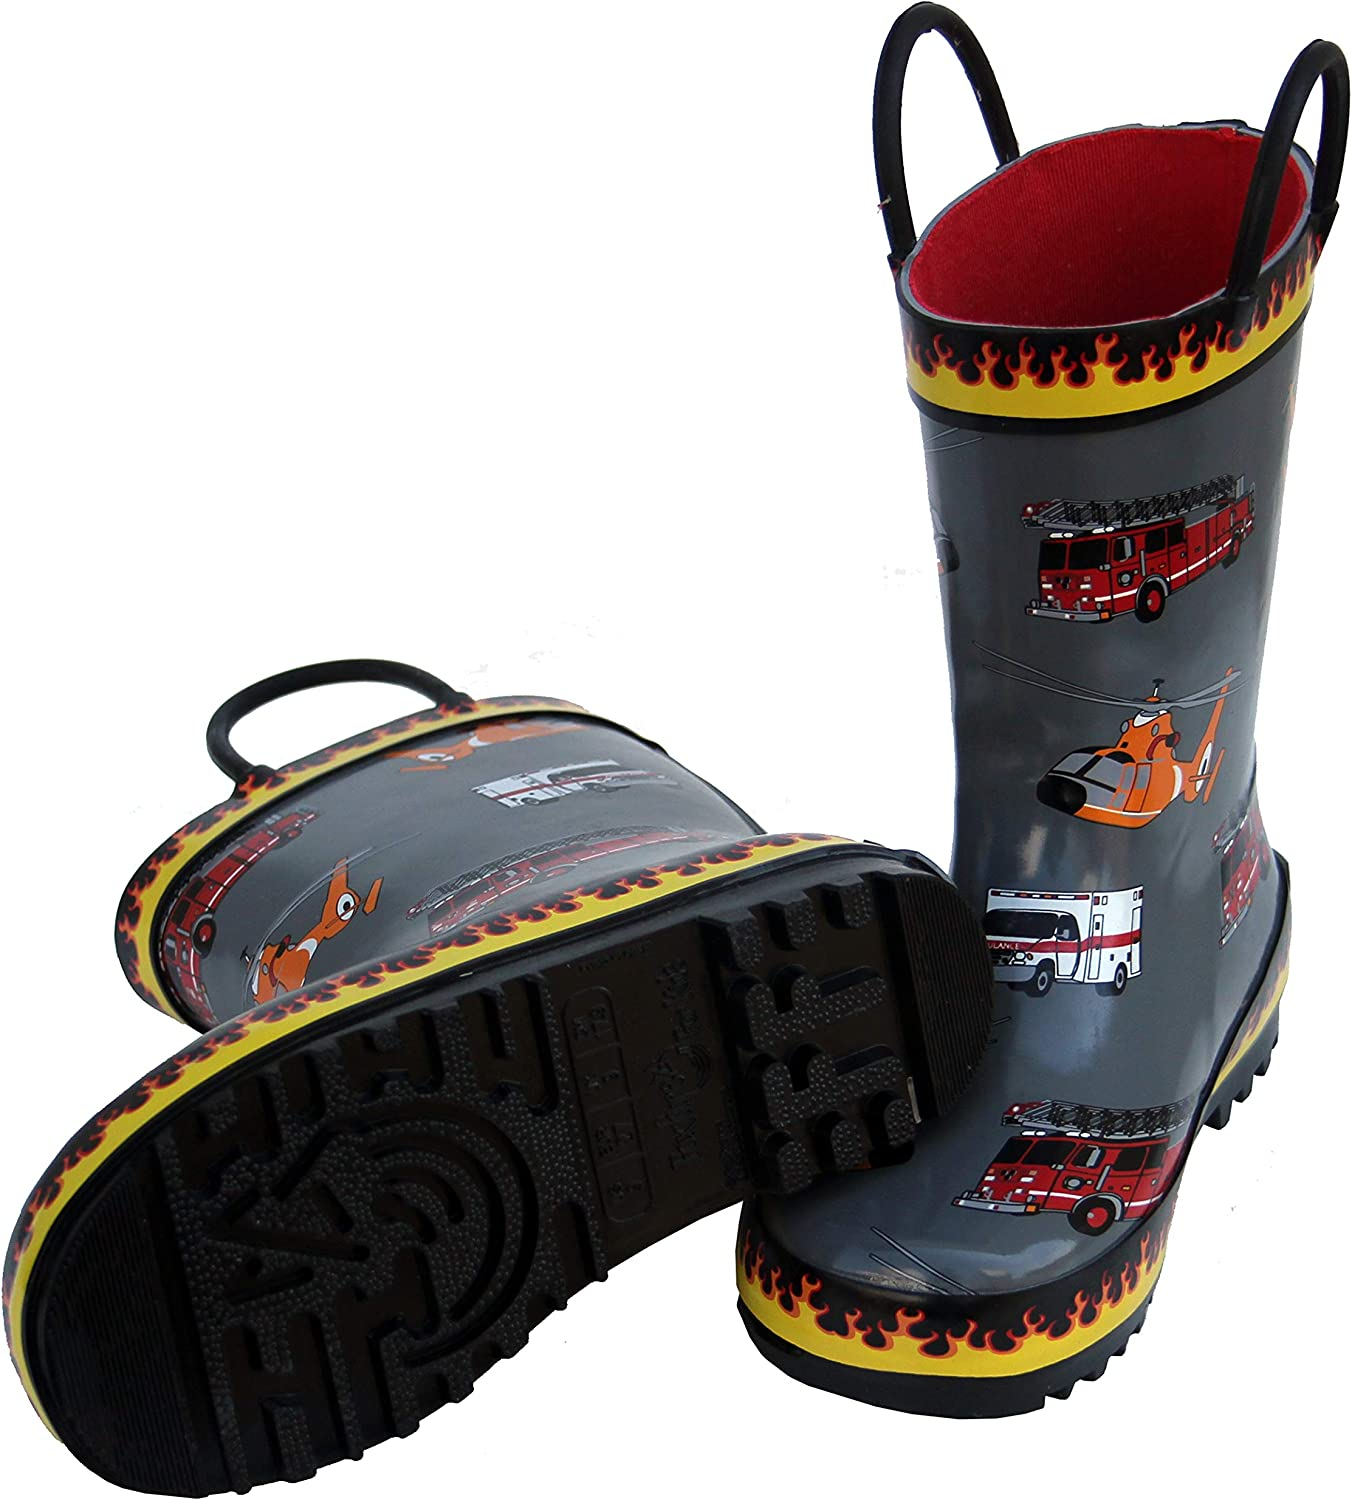 Foxfire for Kids Gray Rubber Boot Truck Fire Trim 55% Max 55% OFF OFF Helicopt Flame